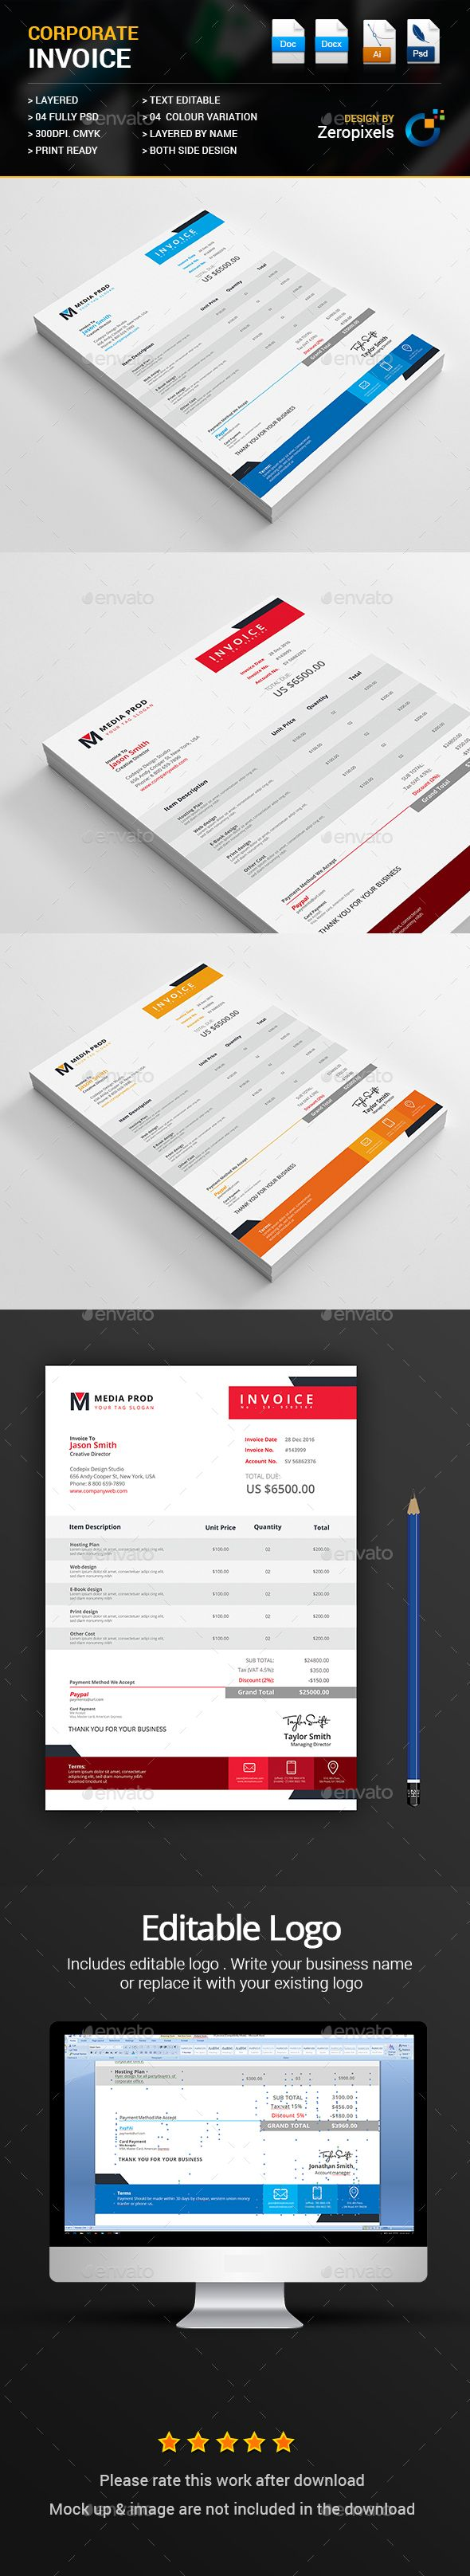 Invoice by zeropixels Invoice Template PSD Vector